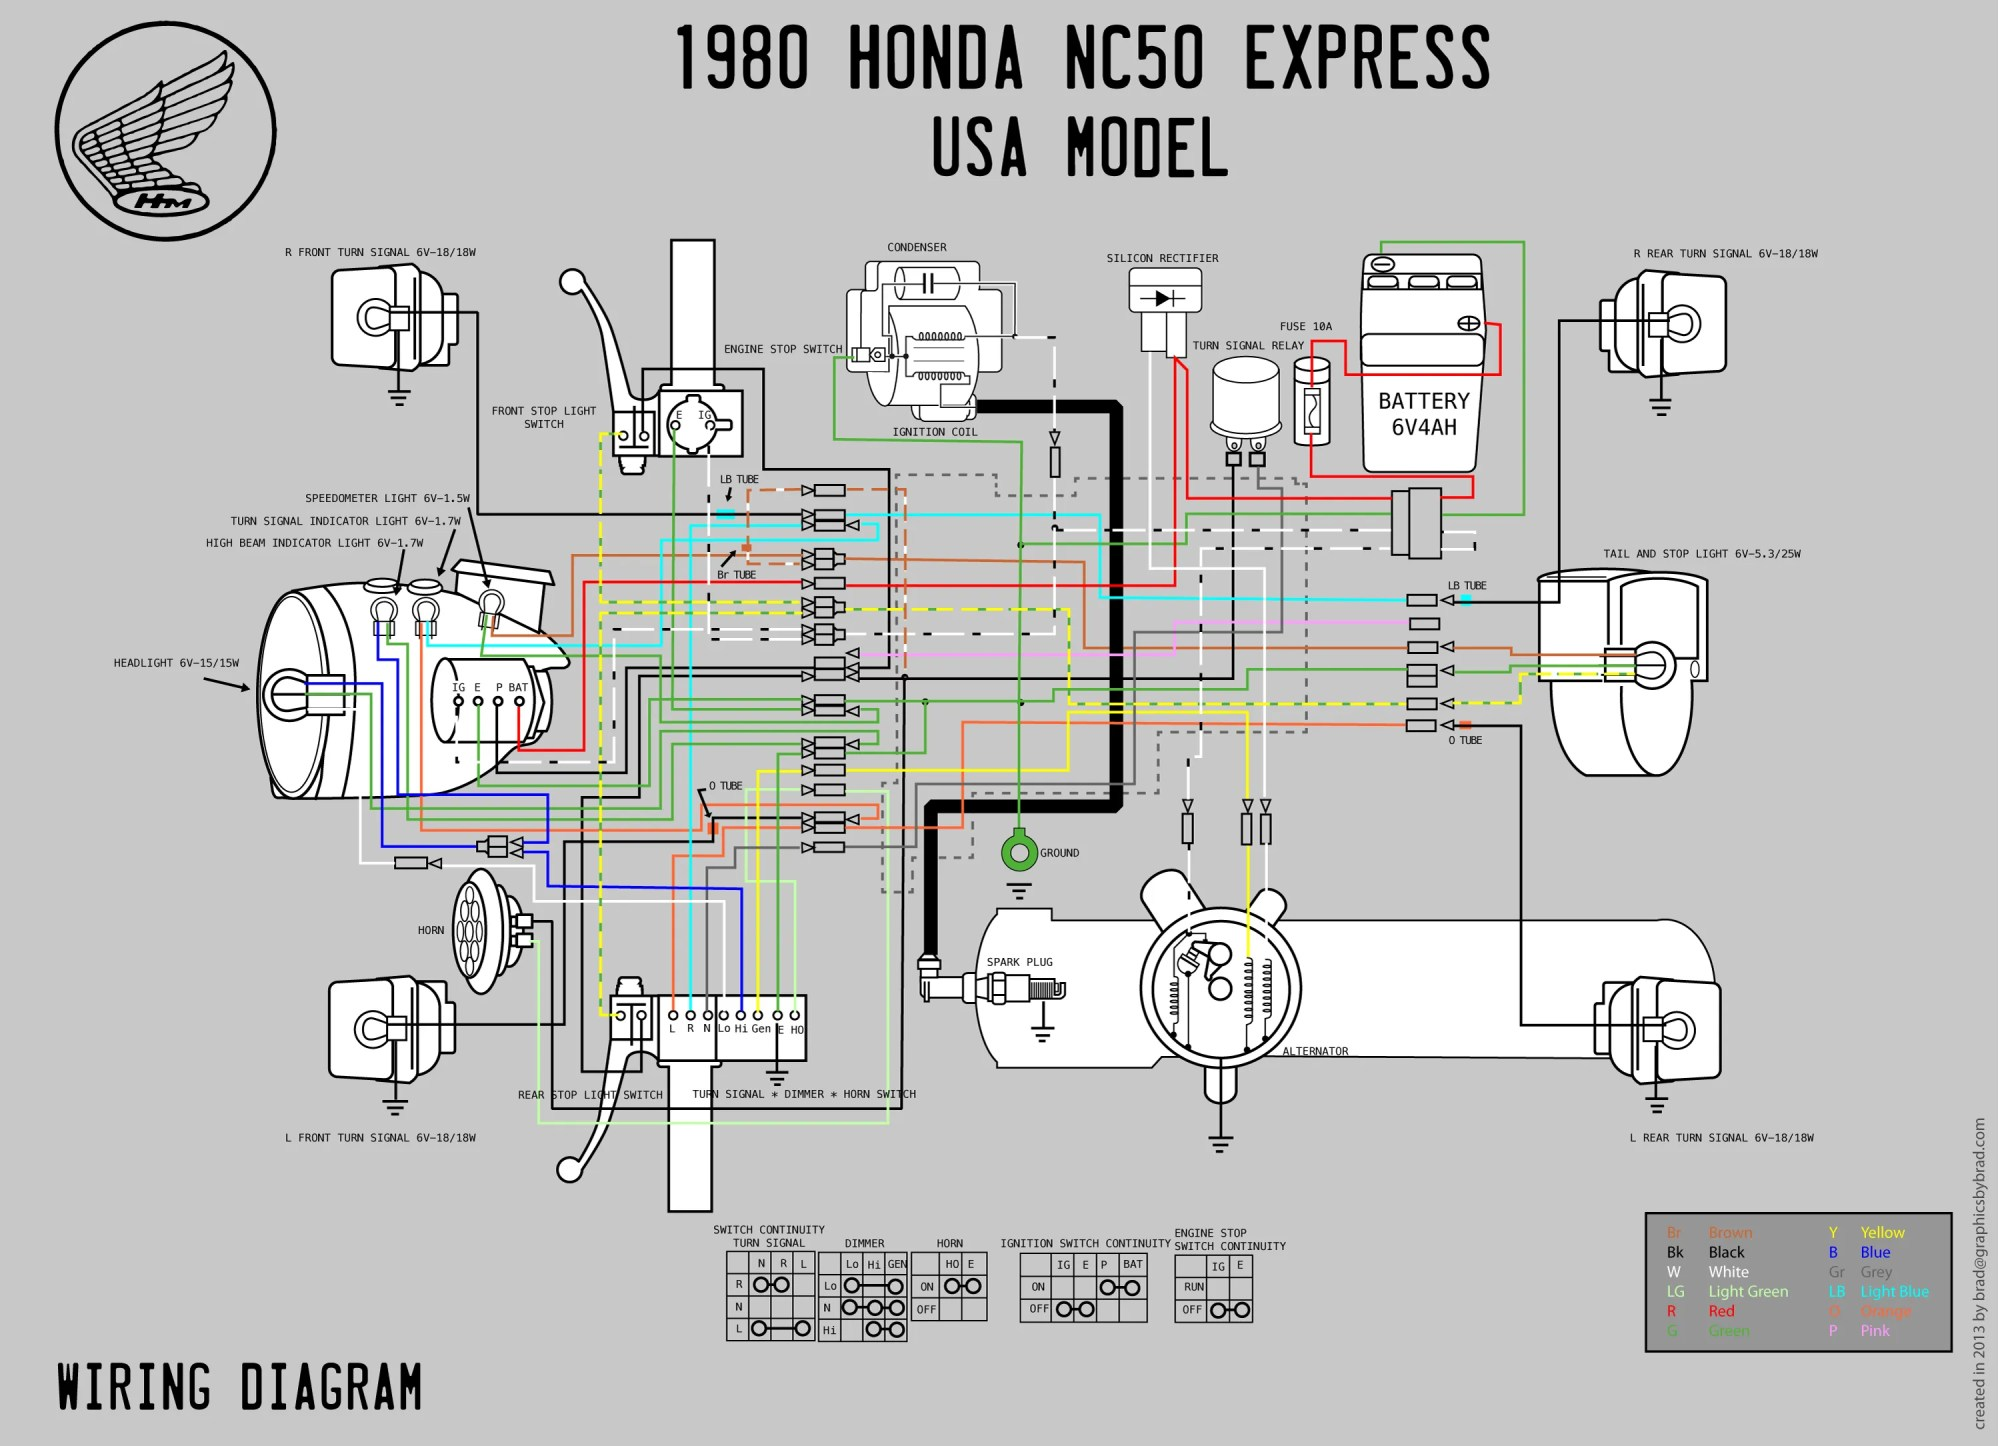 hight resolution of 1980 nc50 wiring lrg jpg